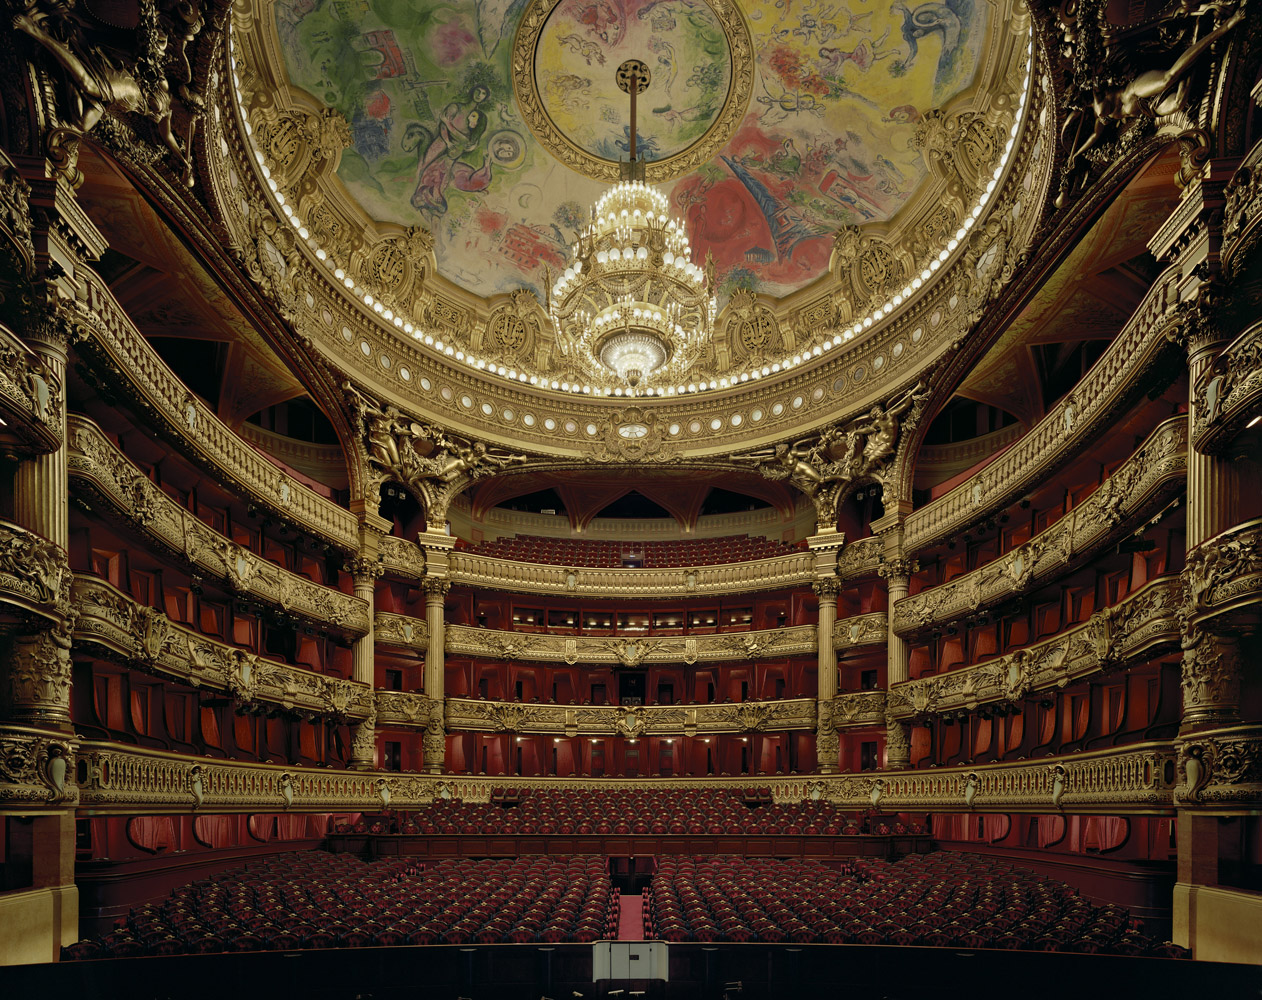 Palais Garnier, Paris, France, 2009, by David Leventi. Fujicolor Crystal Archive print of the interior of the opera house, mounted to Dibond.